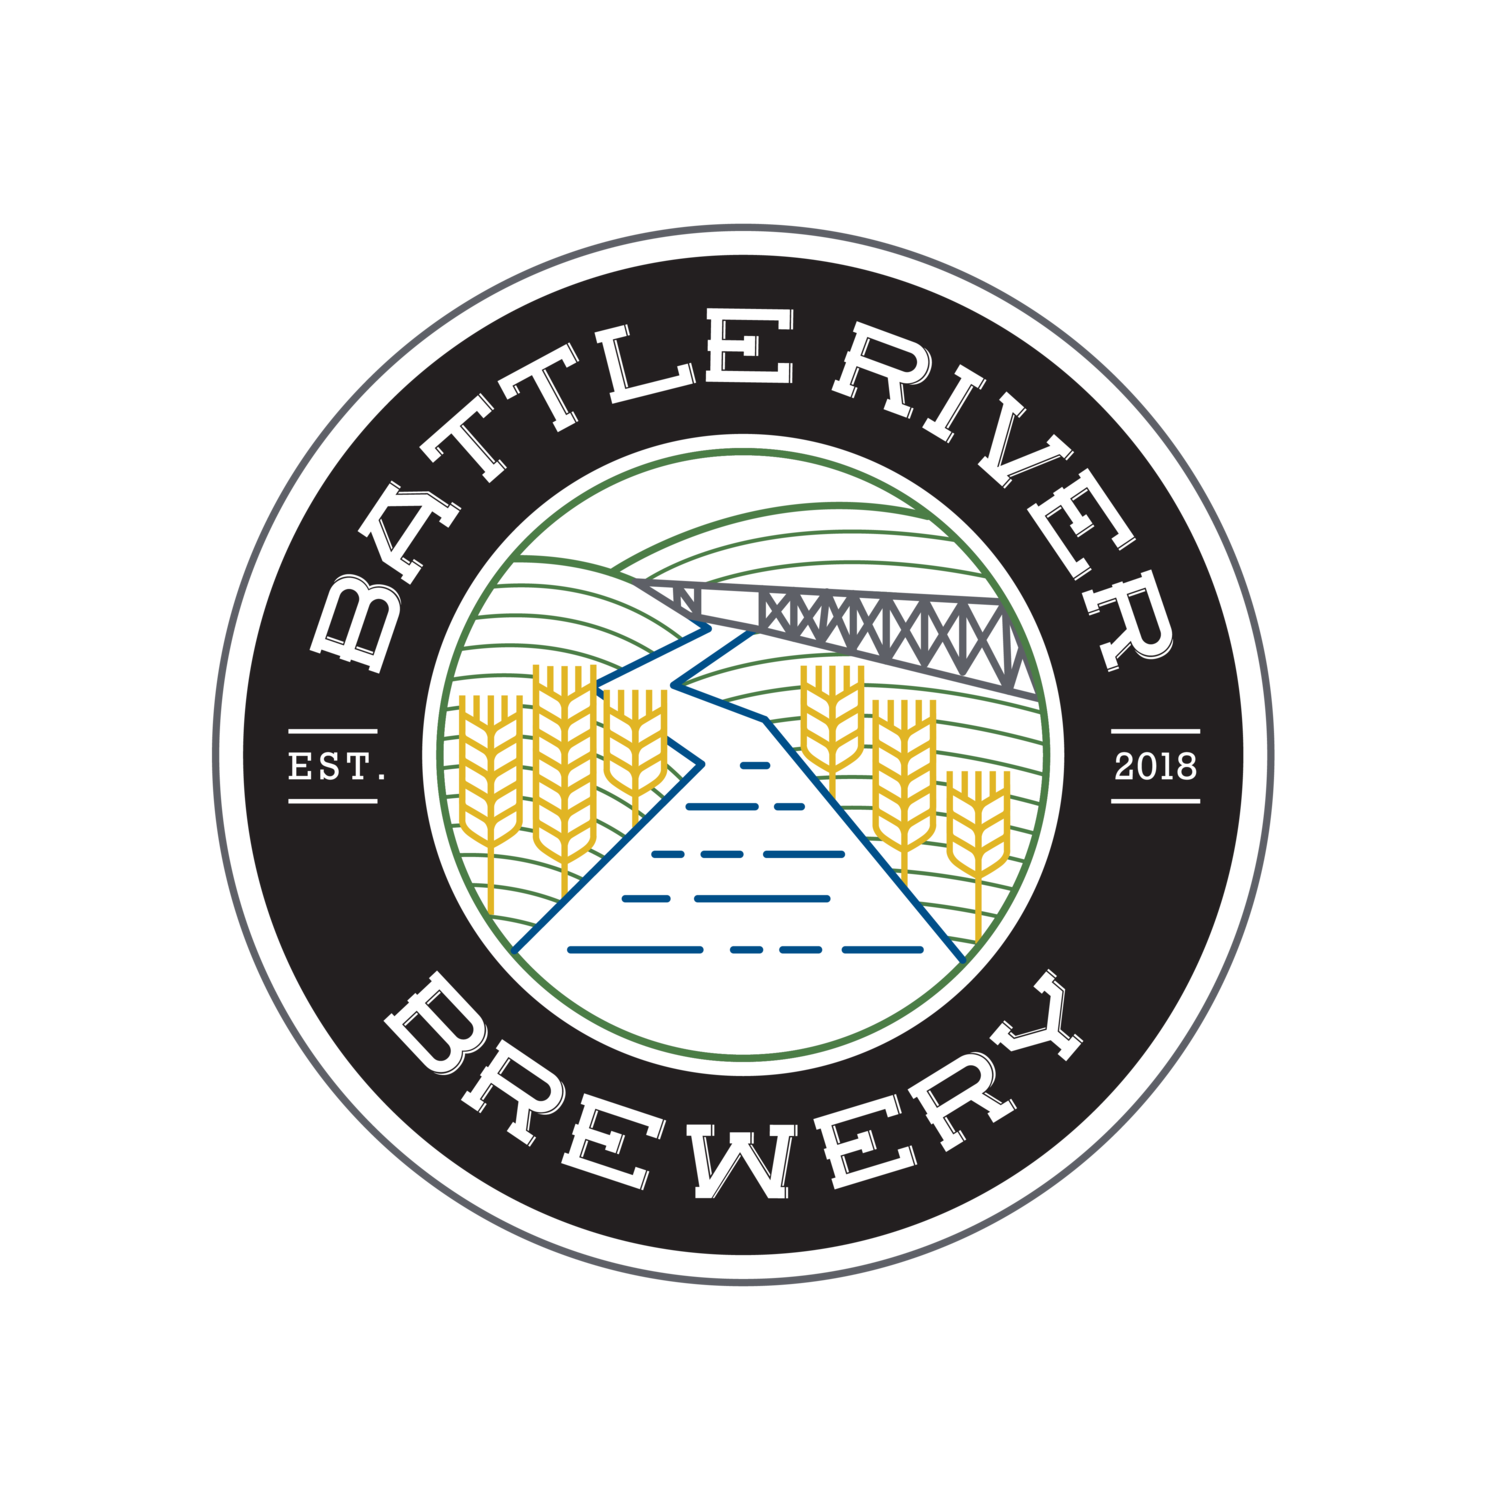 Battle River Brewery